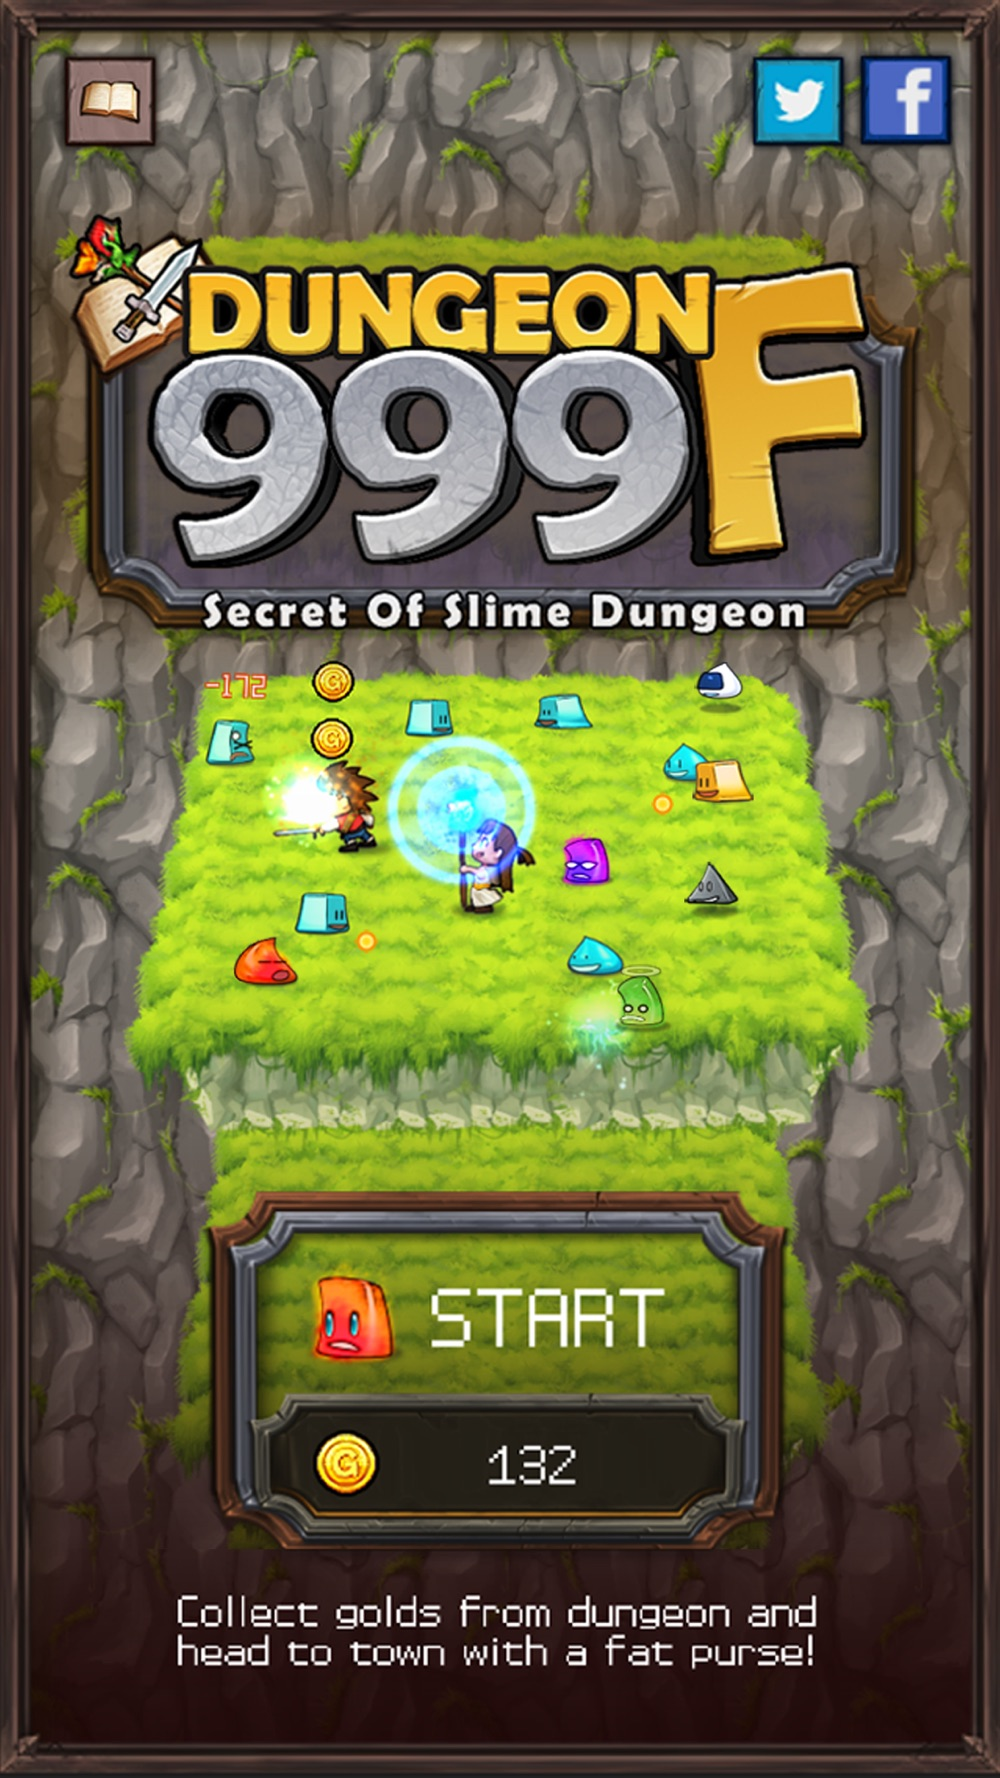 Dungeon999F cheat codes